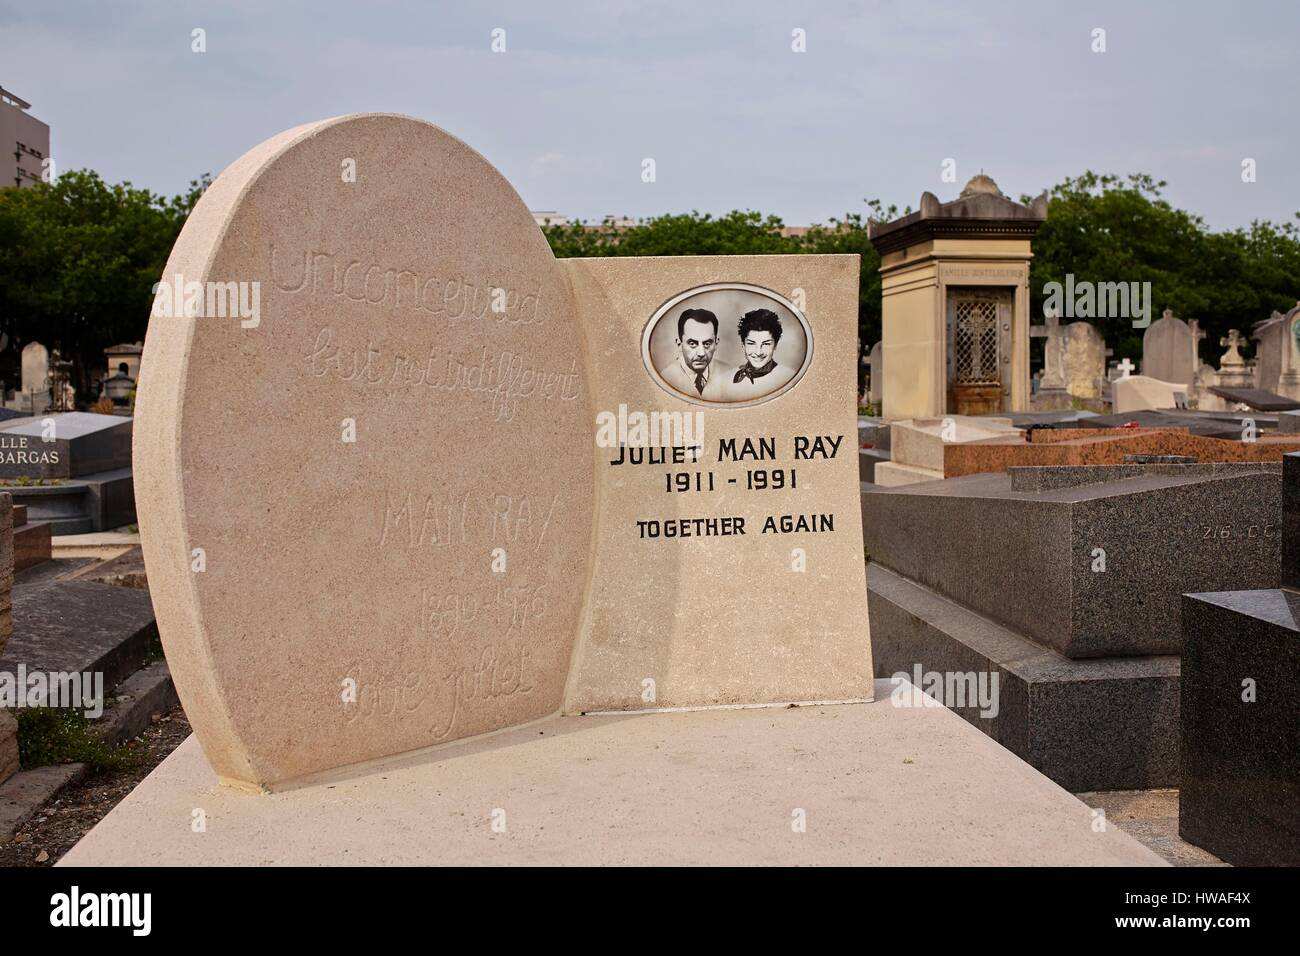 "France, Paris, Montparnasse Cemetery, Tomb of Man Ray Emmanuel said Radnitzky bearing the epitaph: ""Unconcerned, Stock Photo"